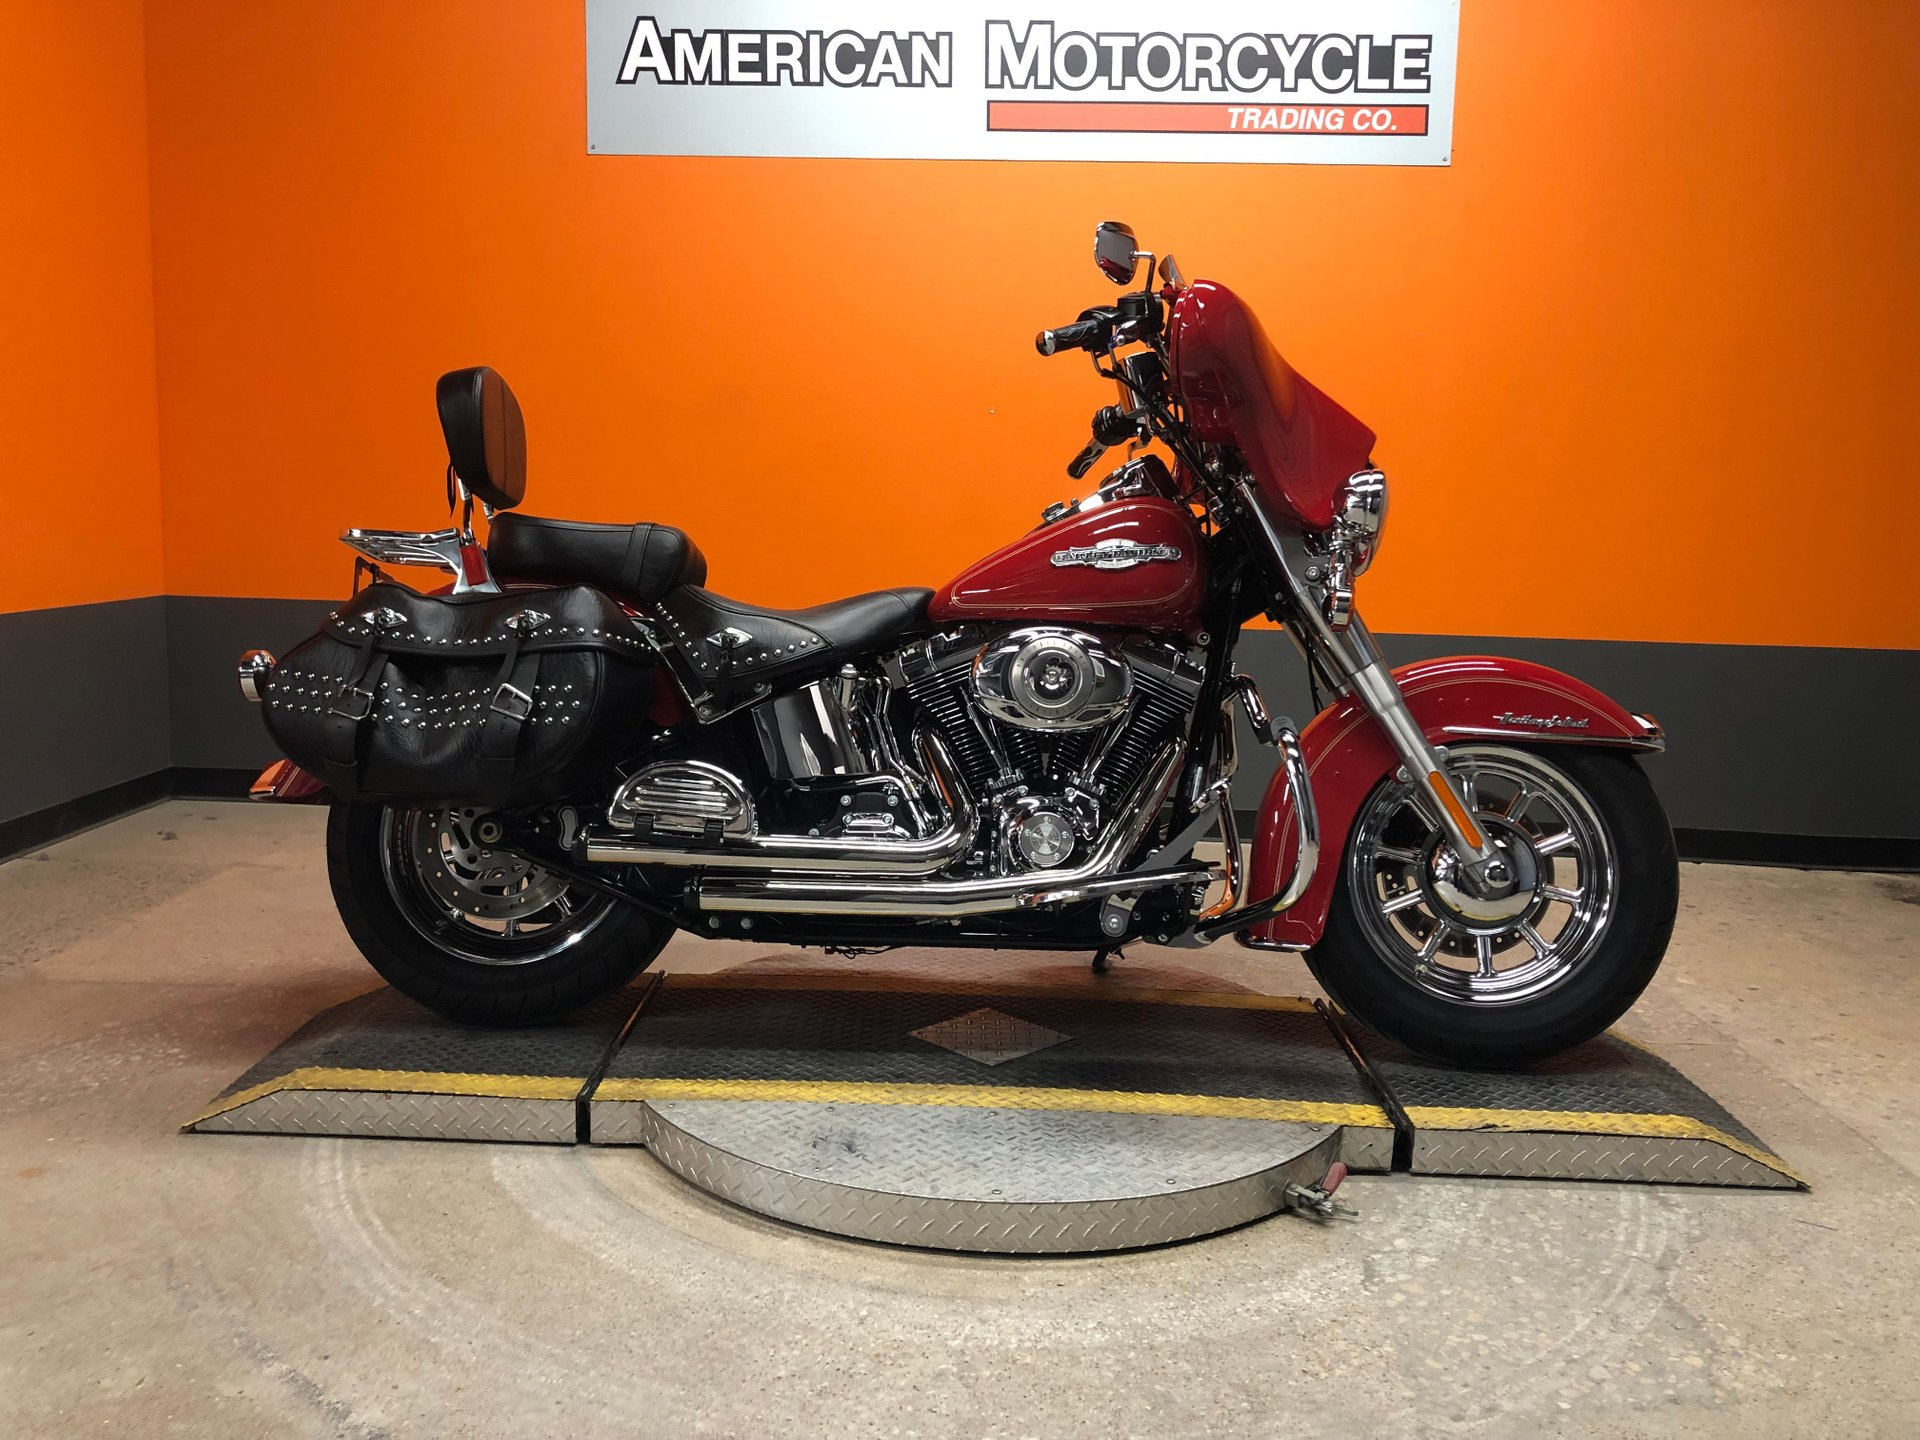 2010 harley davidson softail heritage classic flstc firefighter special edition